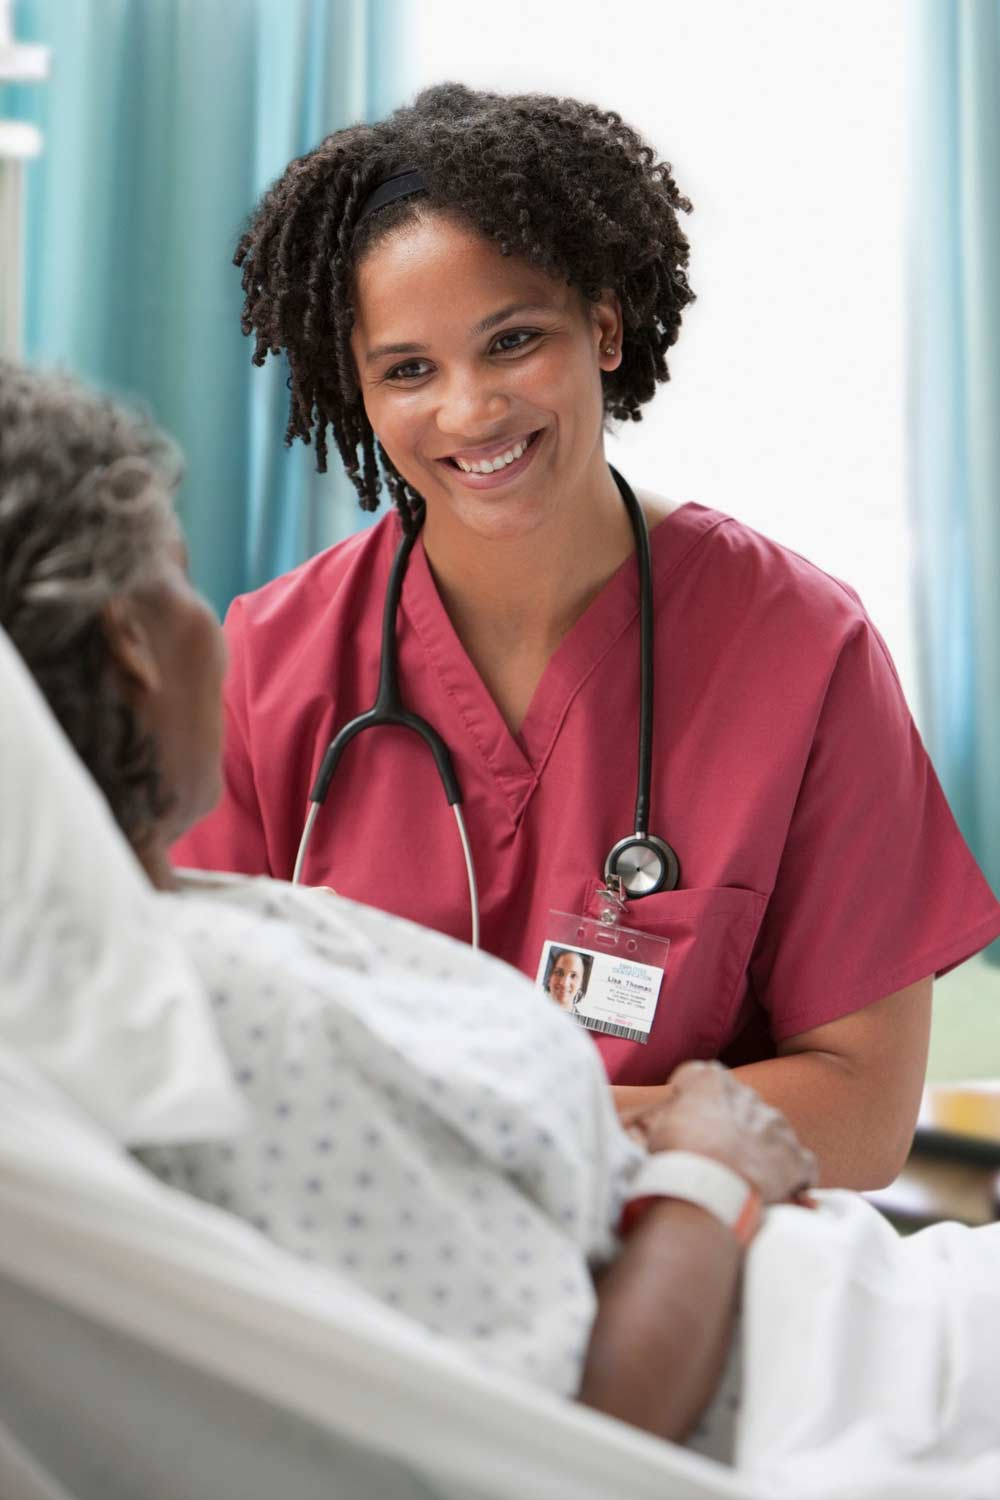 healthcare provider smiling and listening to hospital patient